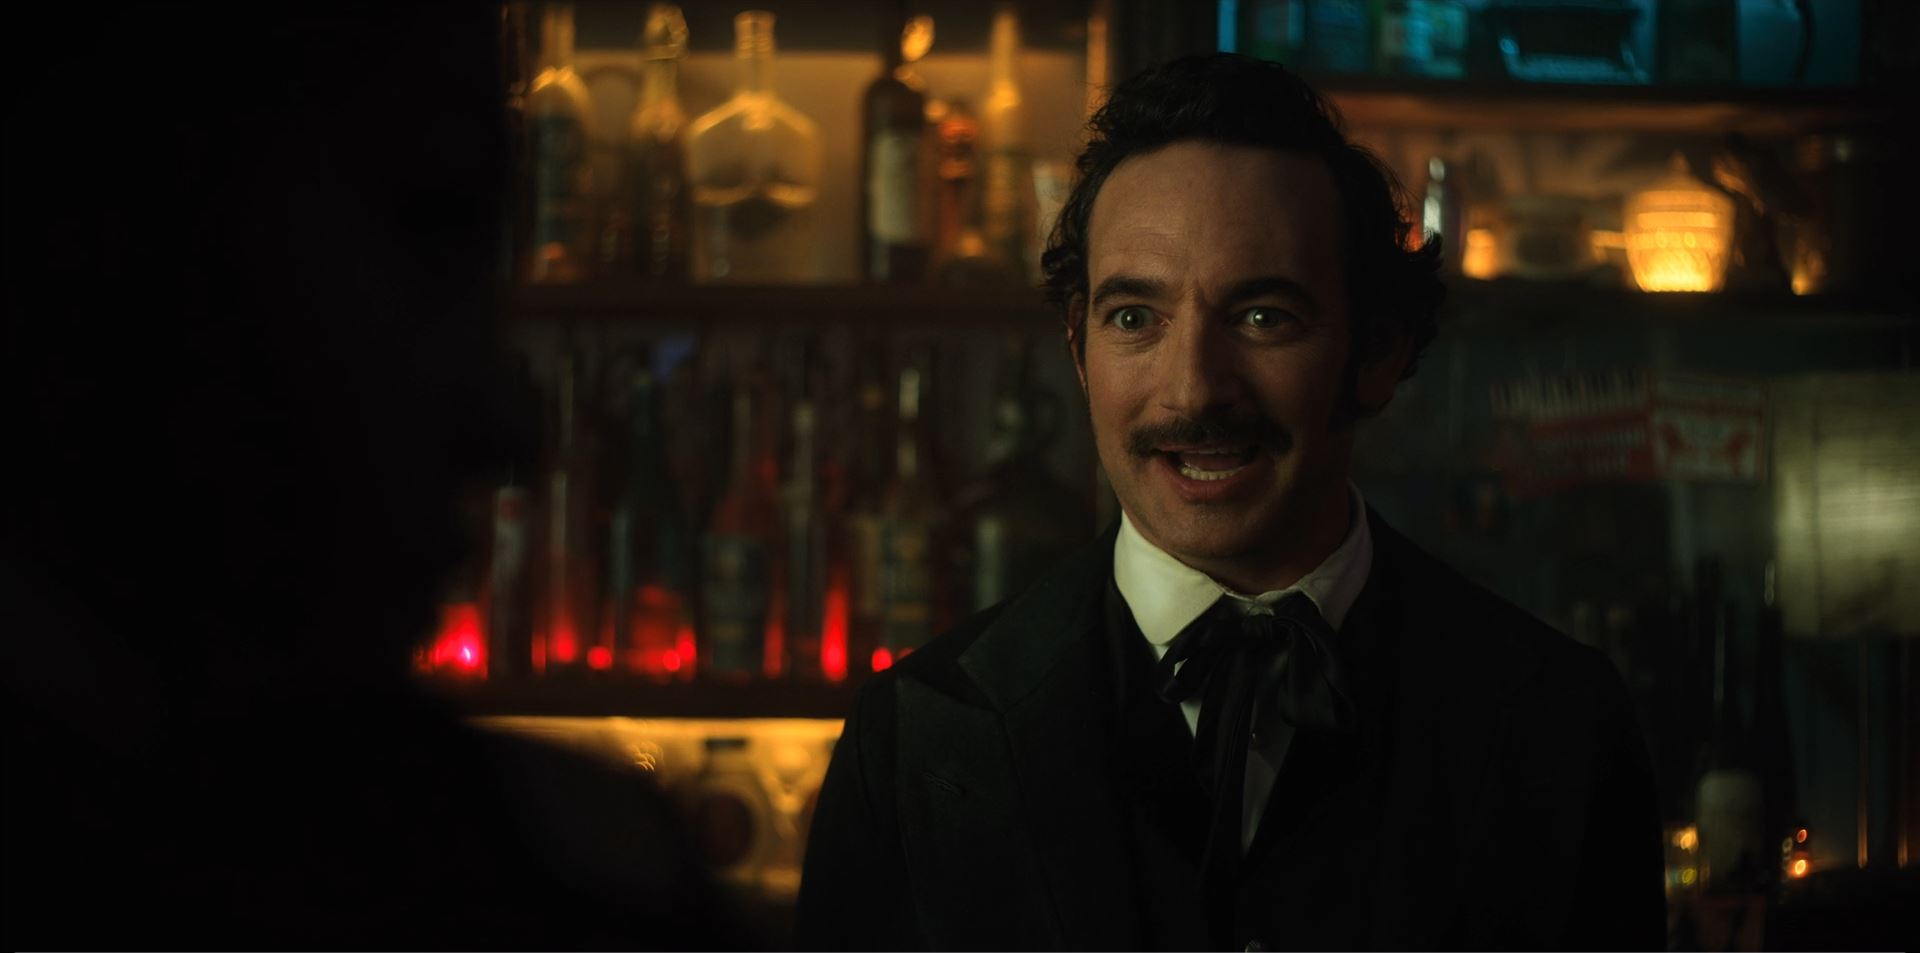 Altered Carbon Season 2 Review - Chris Connor as Poe